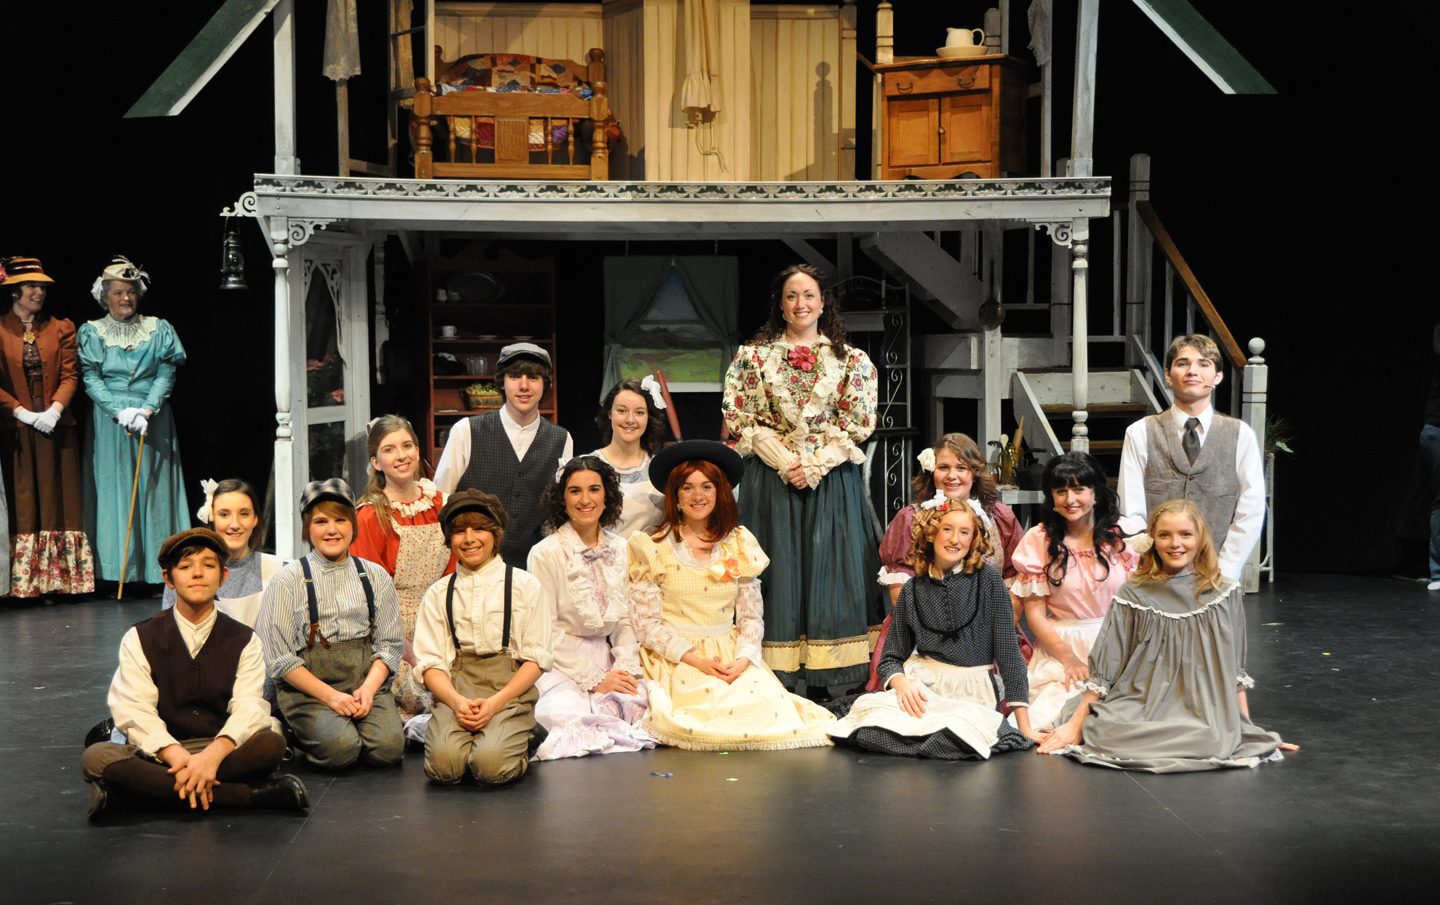 anne of green gables_act2  137